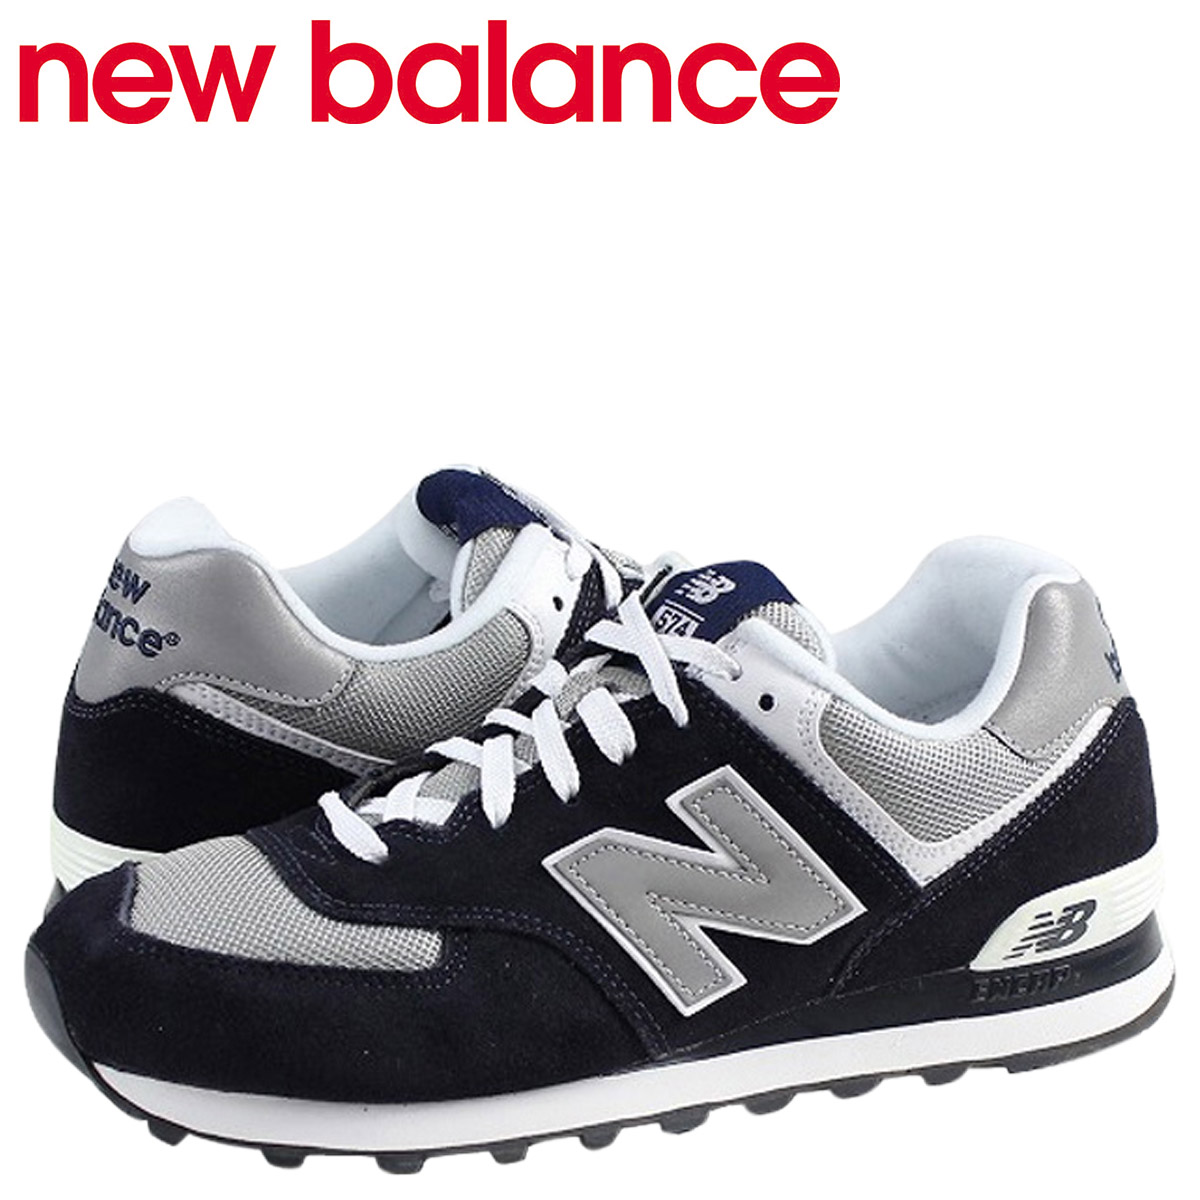 the latest 109f1 d2ecd new balance New Balance 574 sneakers M574BGS D Wise men shoes navy